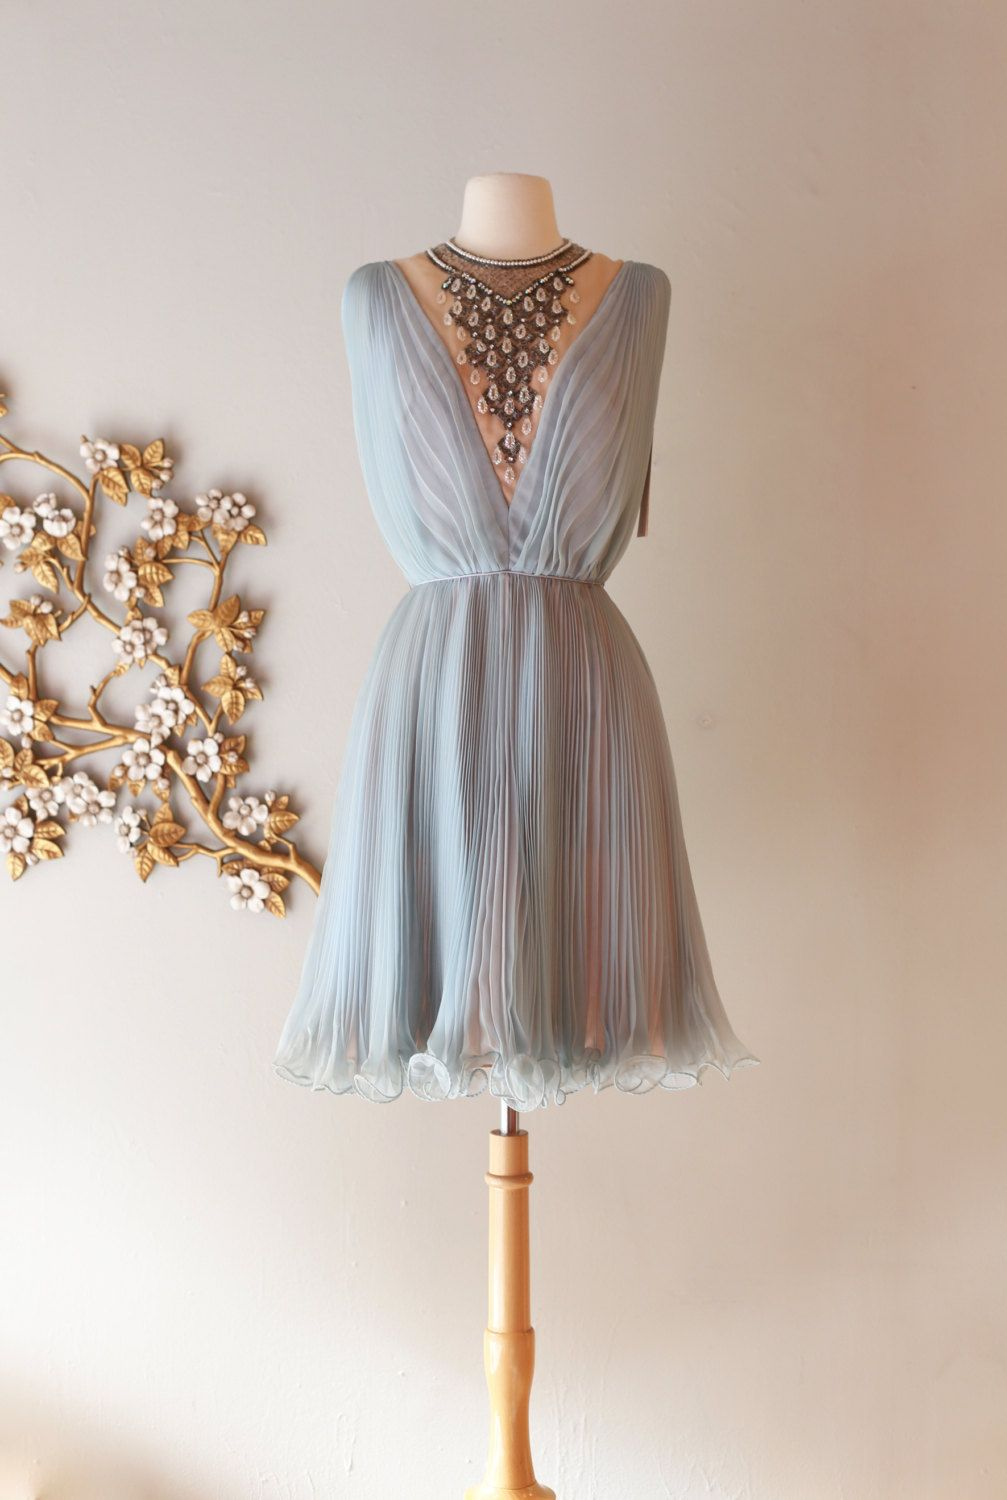 Pin On Vintage Dresses Xtabay Vintage Clothing Boutique [ 1500 x 1007 Pixel ]